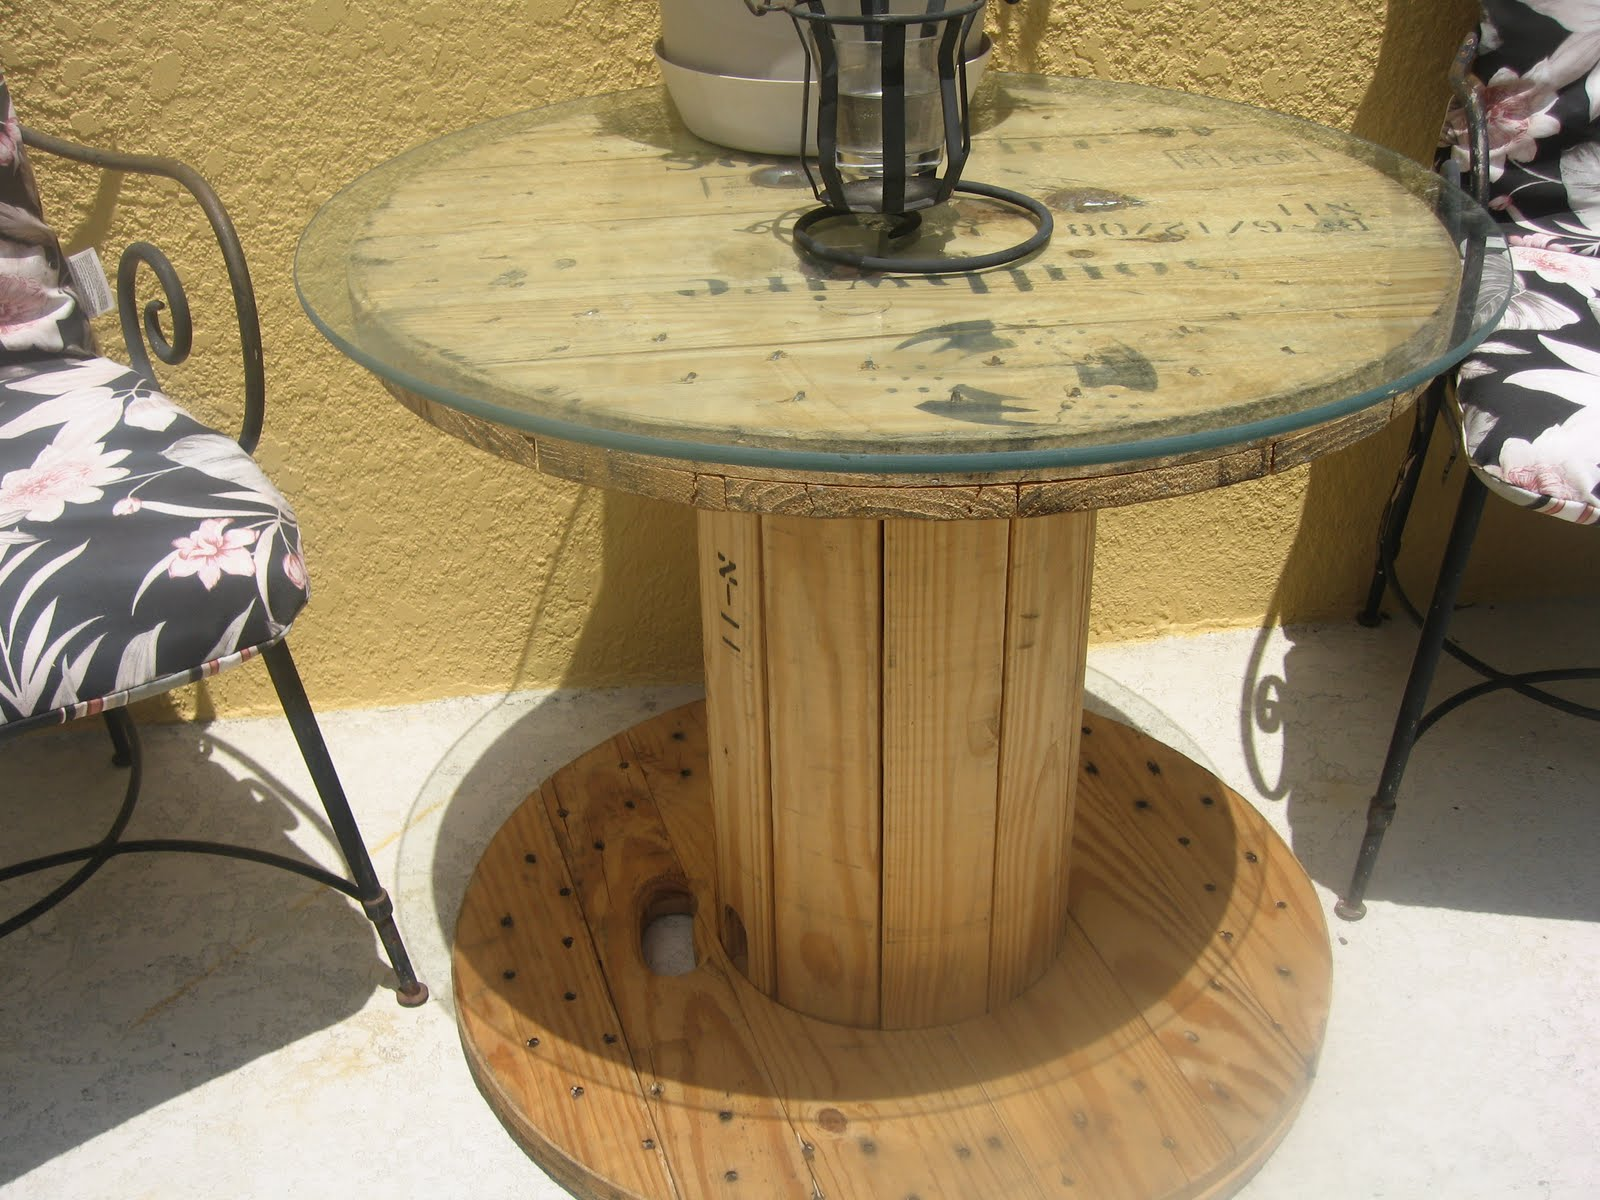 Sunflowers & Spears: Wooden Cable Spool Table